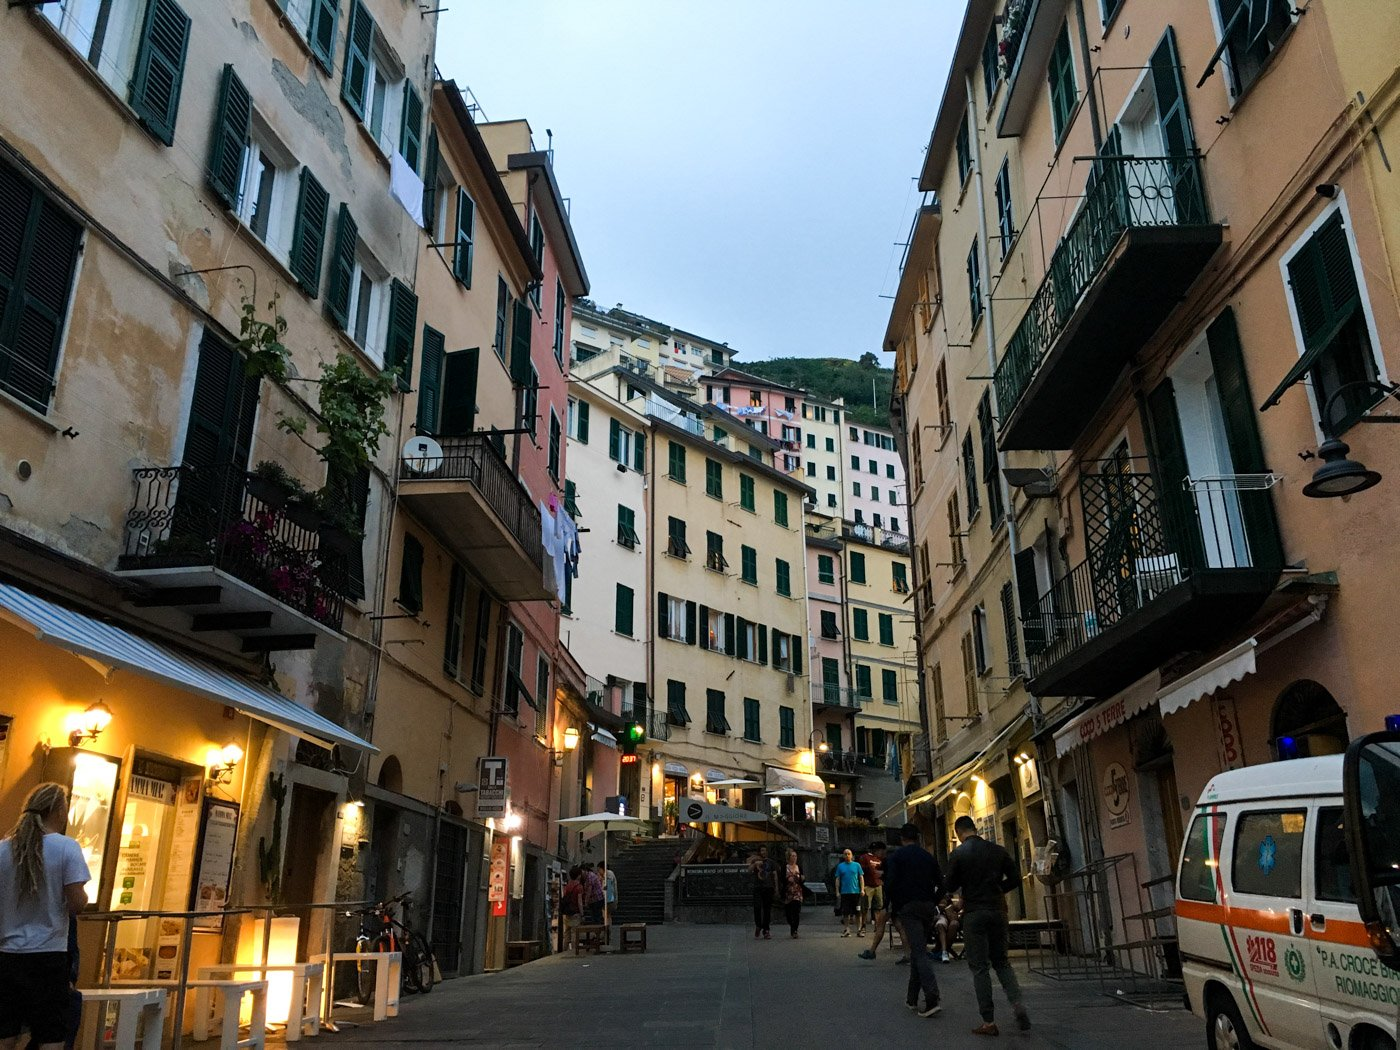 If you've only got a short amount of time, here's how to do Cinque Terre in one day!